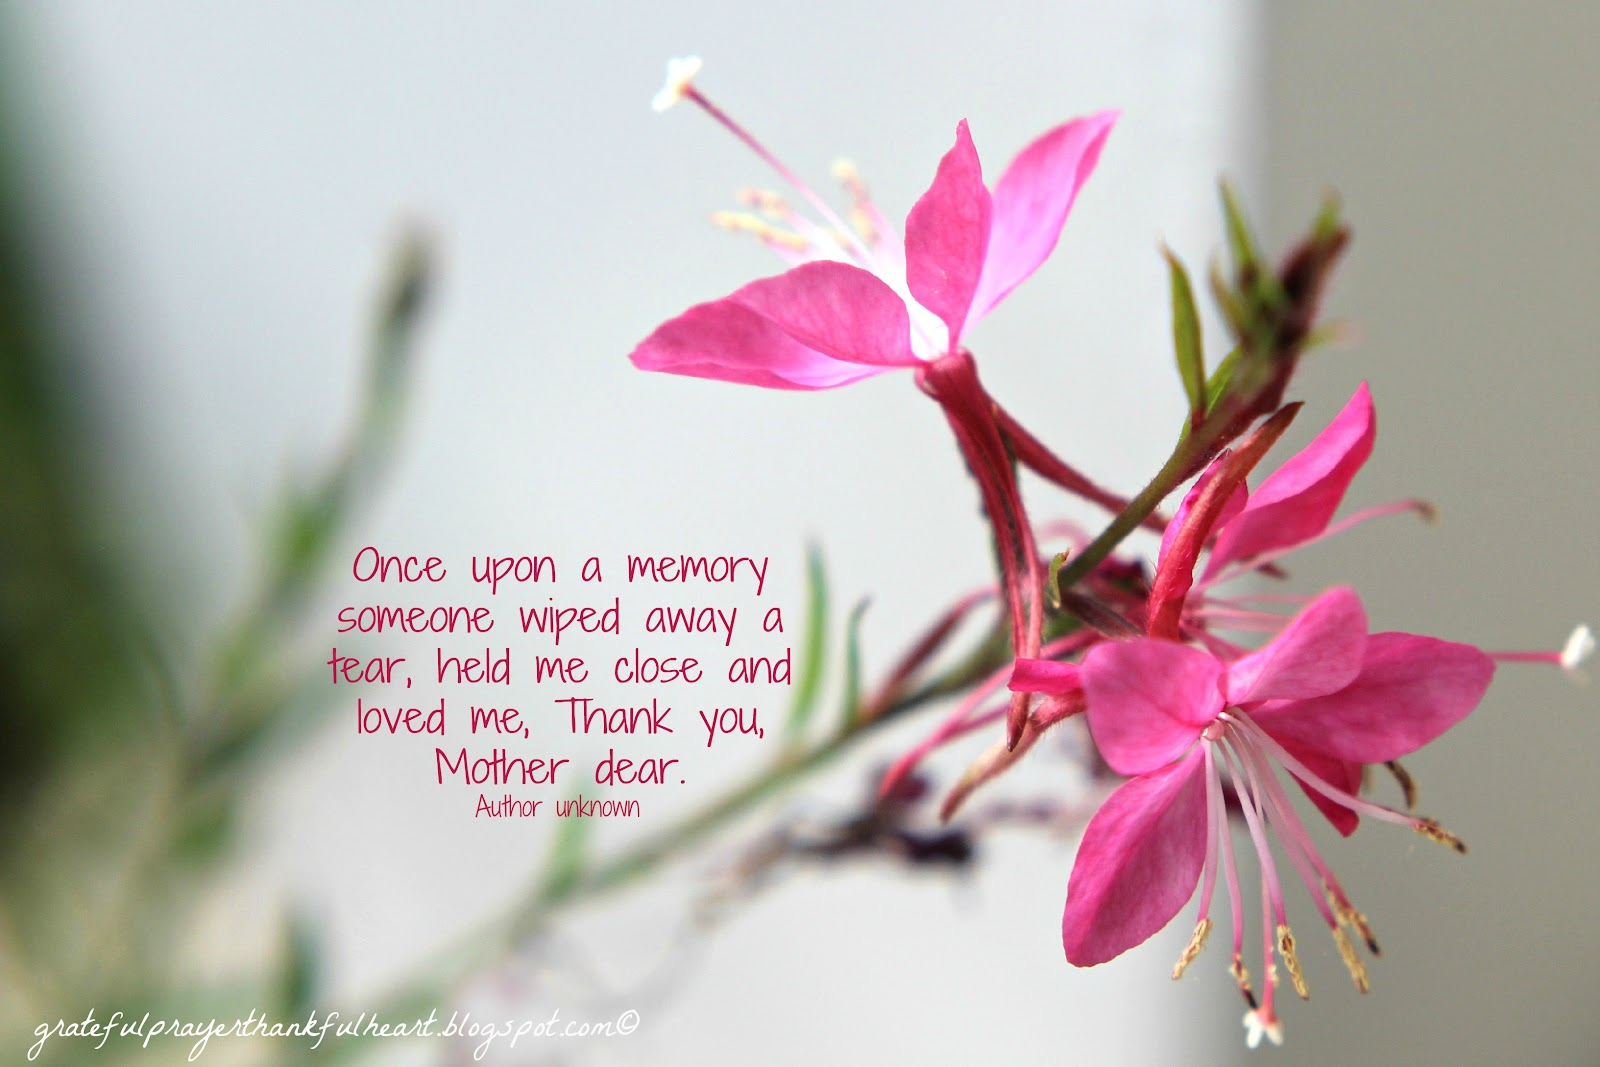 Quotes About Cousin Passed Away. QuotesGram